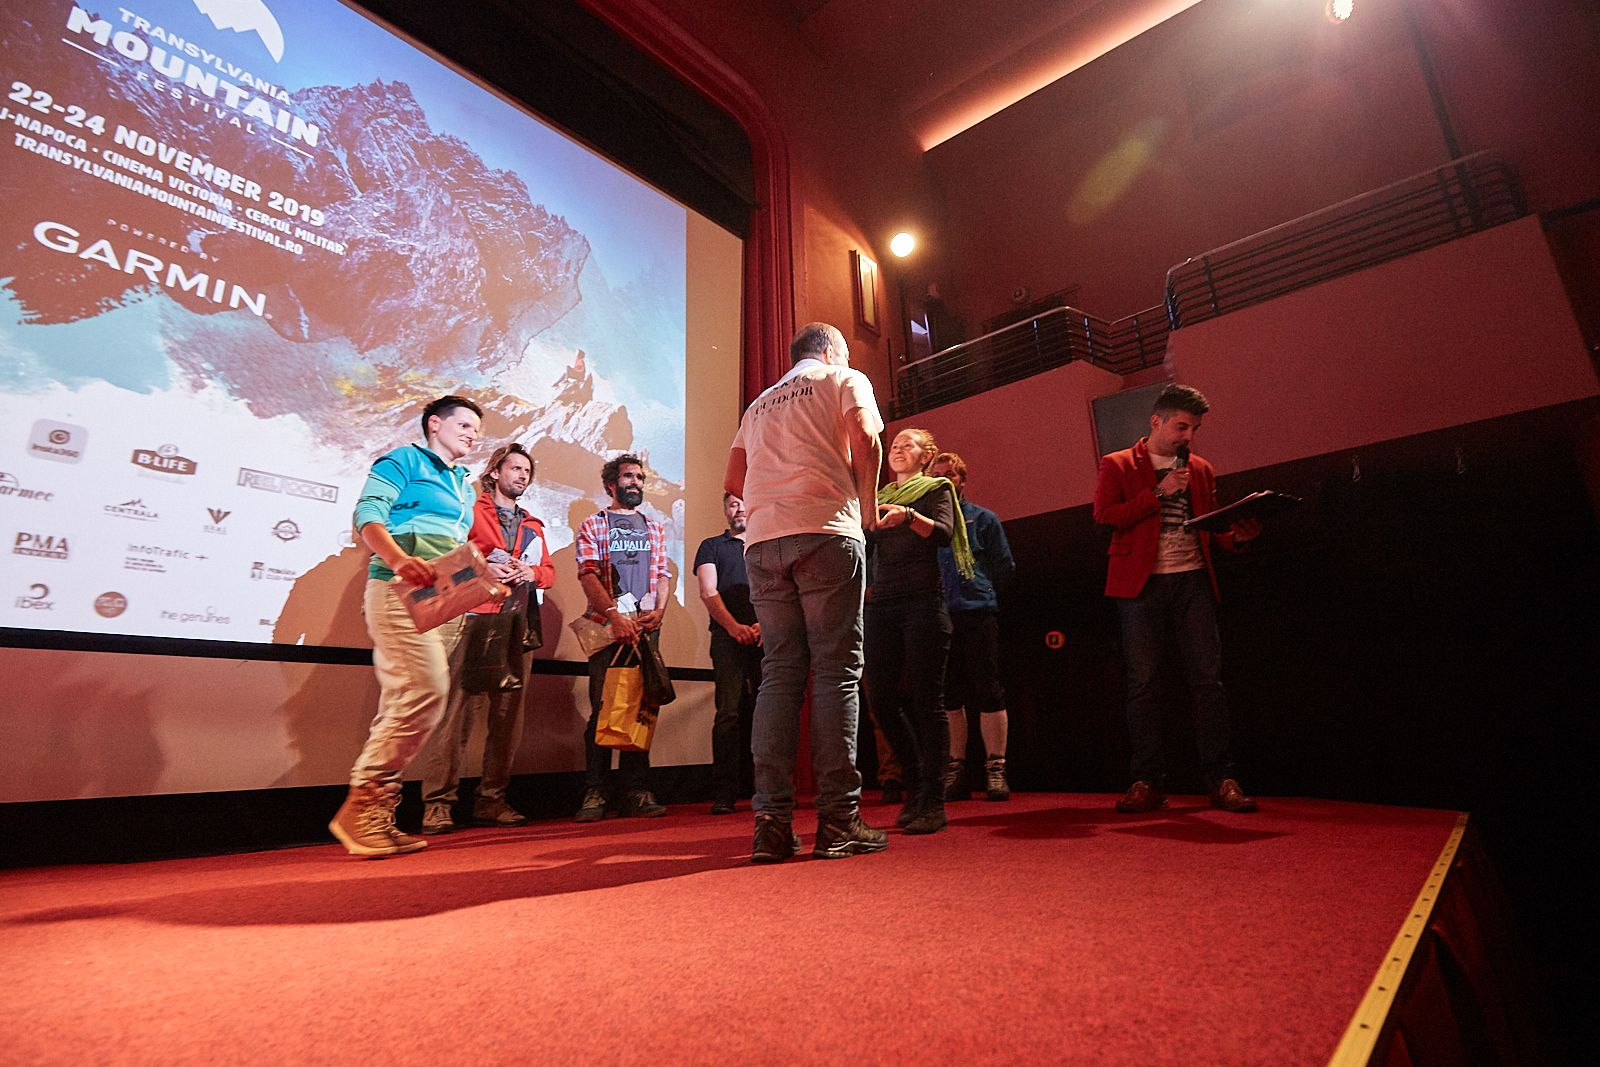 Enjoying a wide international participation in all competitions, this year we are once again honored to present the winners of the film, photography, innovation and mountain activity awards.